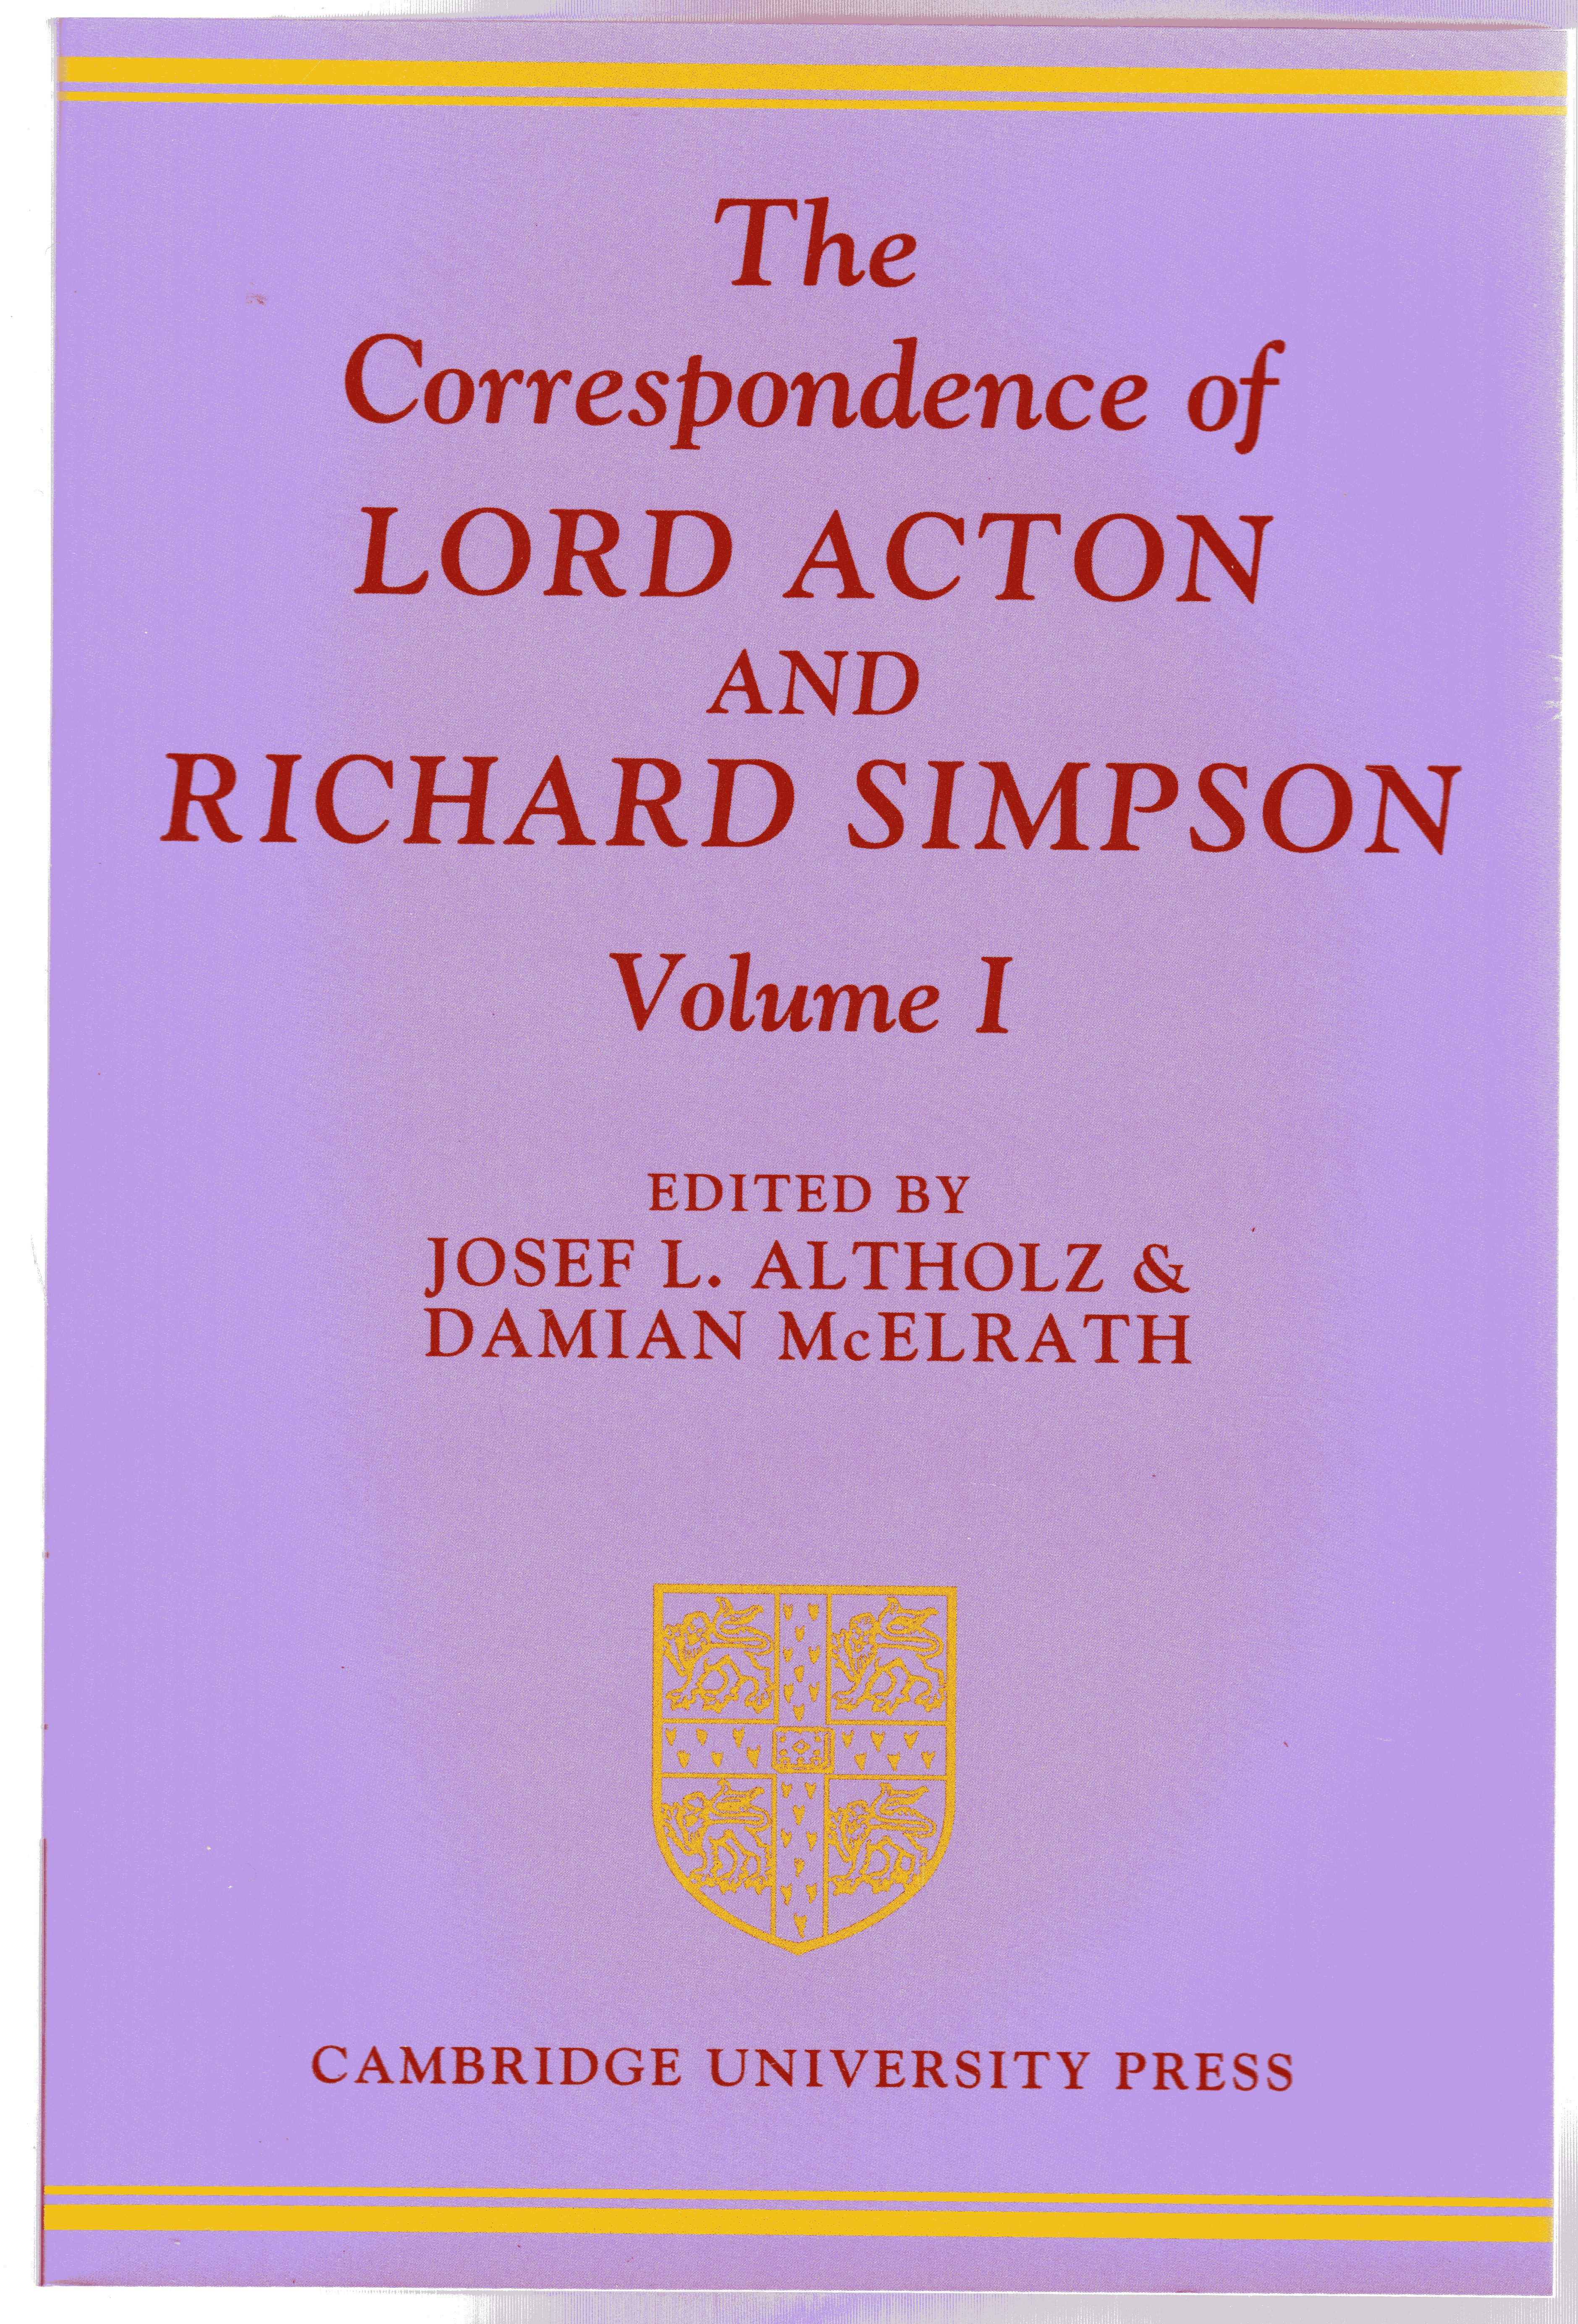 Image for The Correspondence of Lord Acton and Richard Simpson: Volume 1